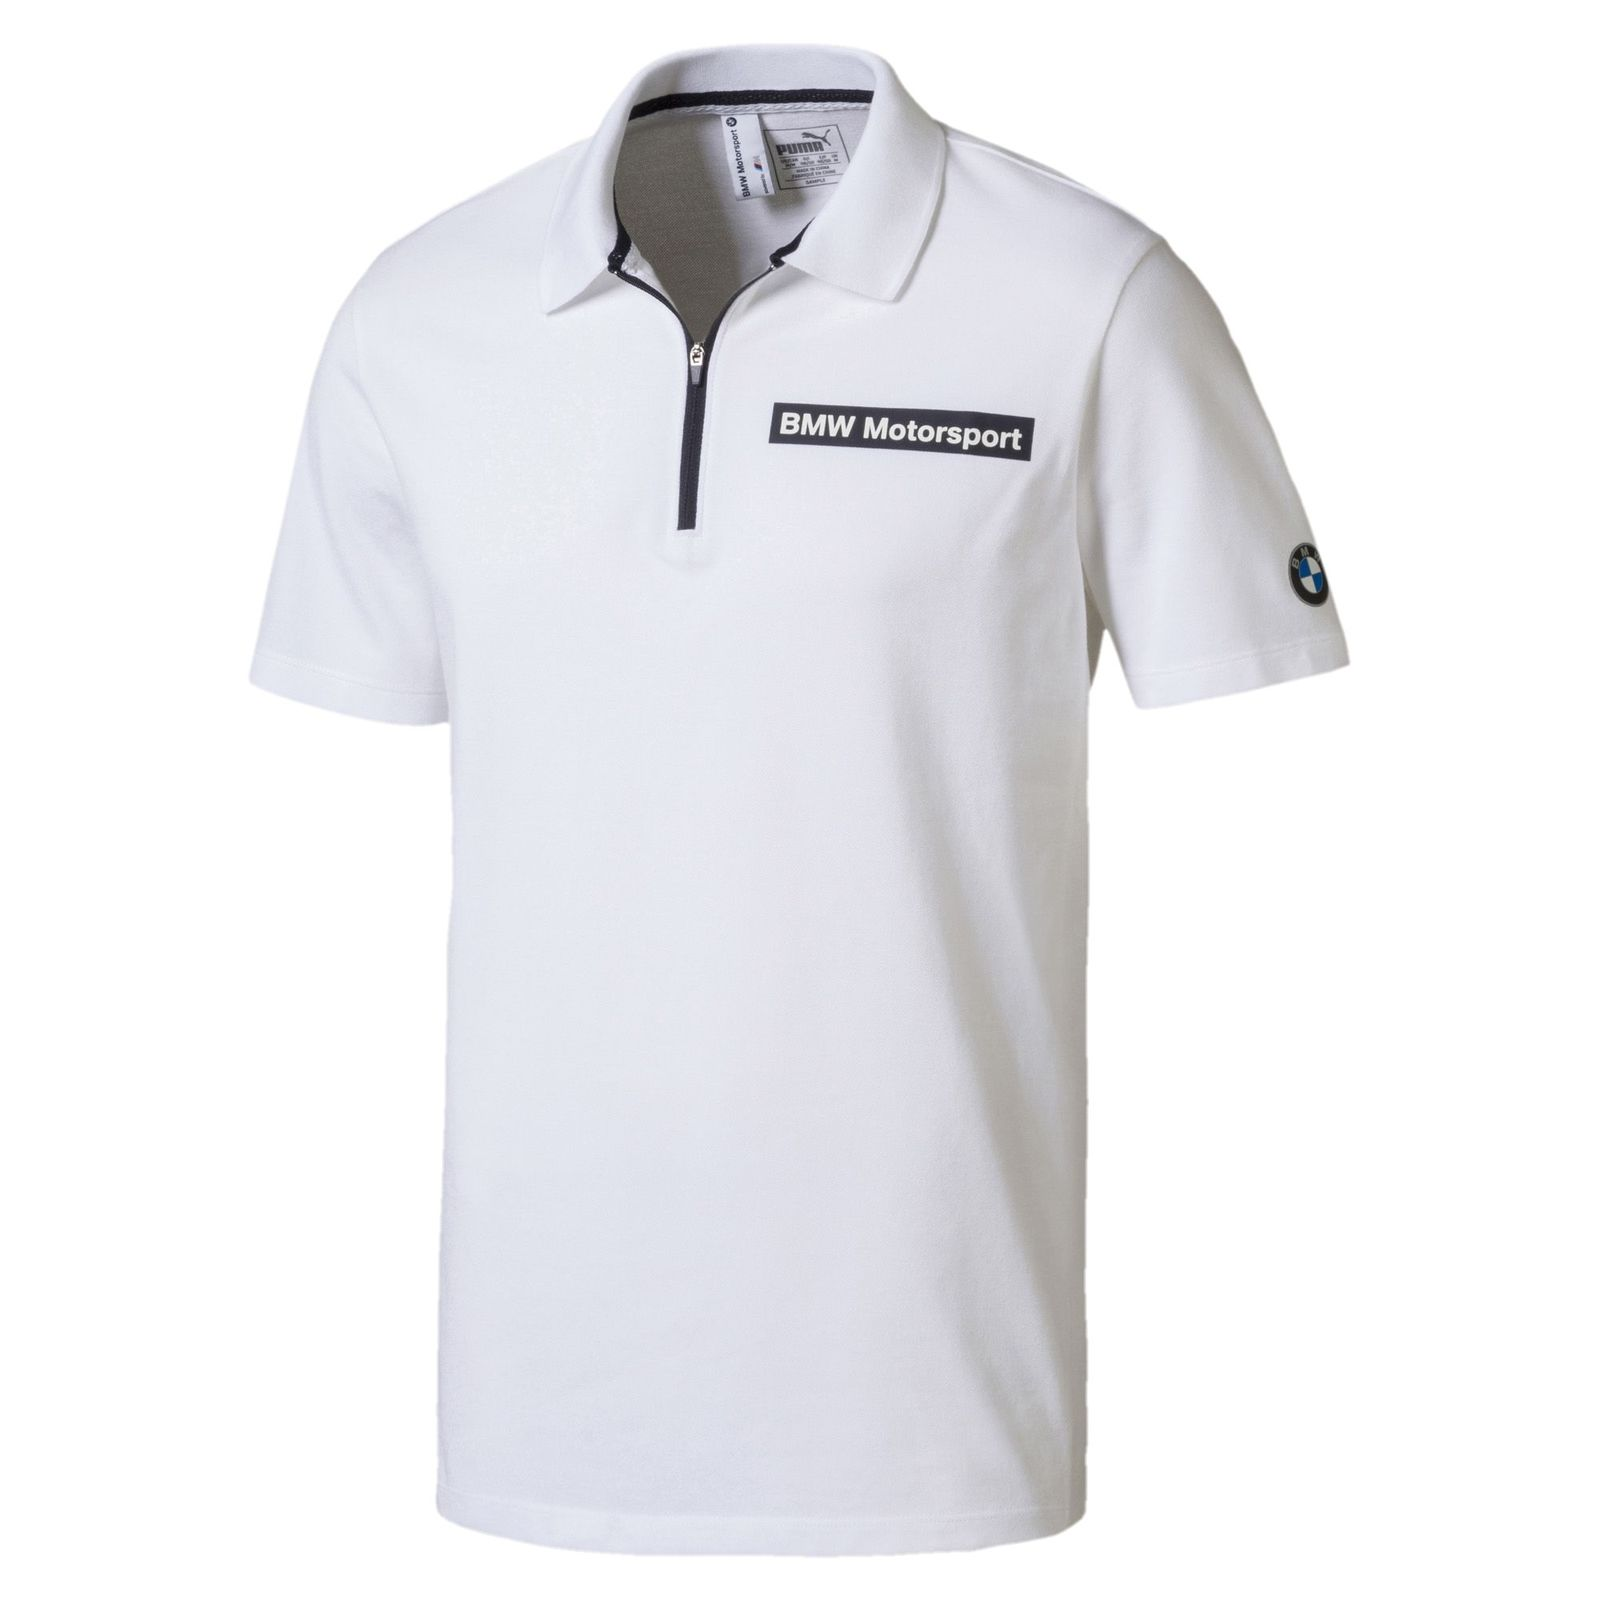 506b2ae1d1 Awesome PUMA BMW Motorsport Men's Polo Shirt 2018-2019